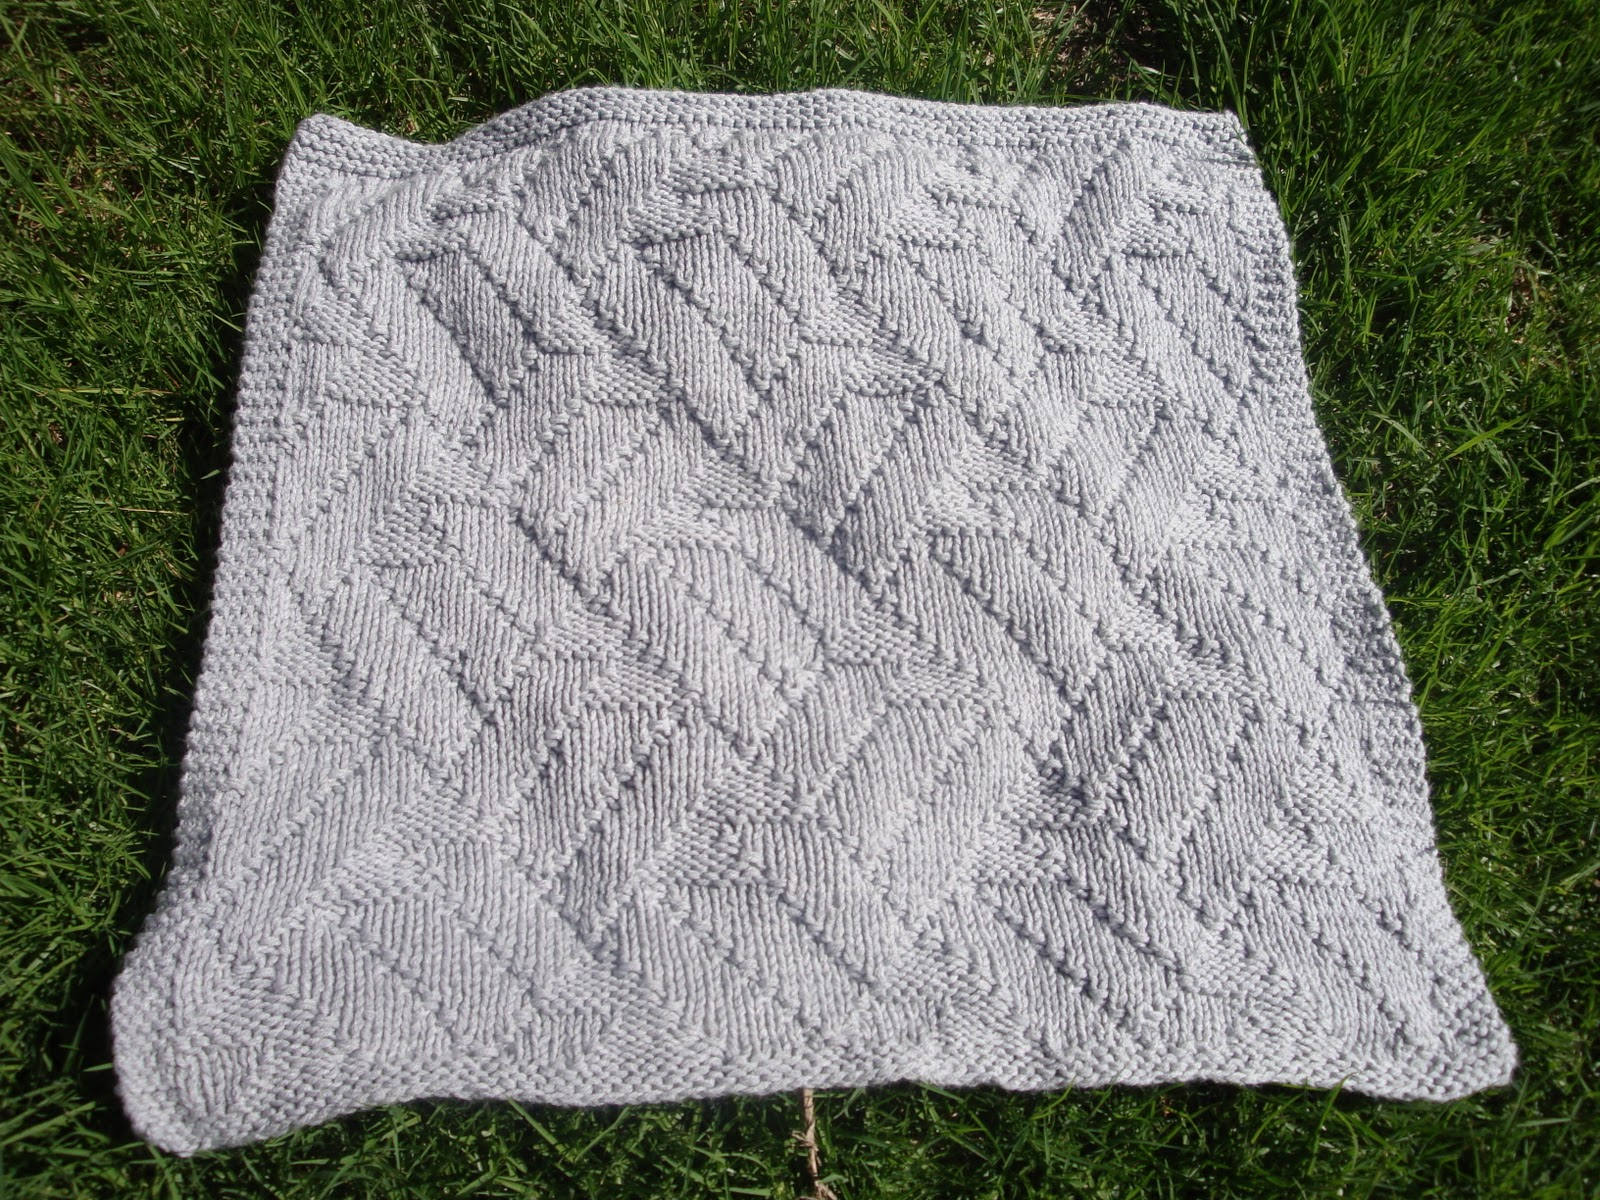 Knitting Patterns For Baby Blankets : Life As We Know It: Kais Knit Baby Blanket Pattern: Pavilion Stitch